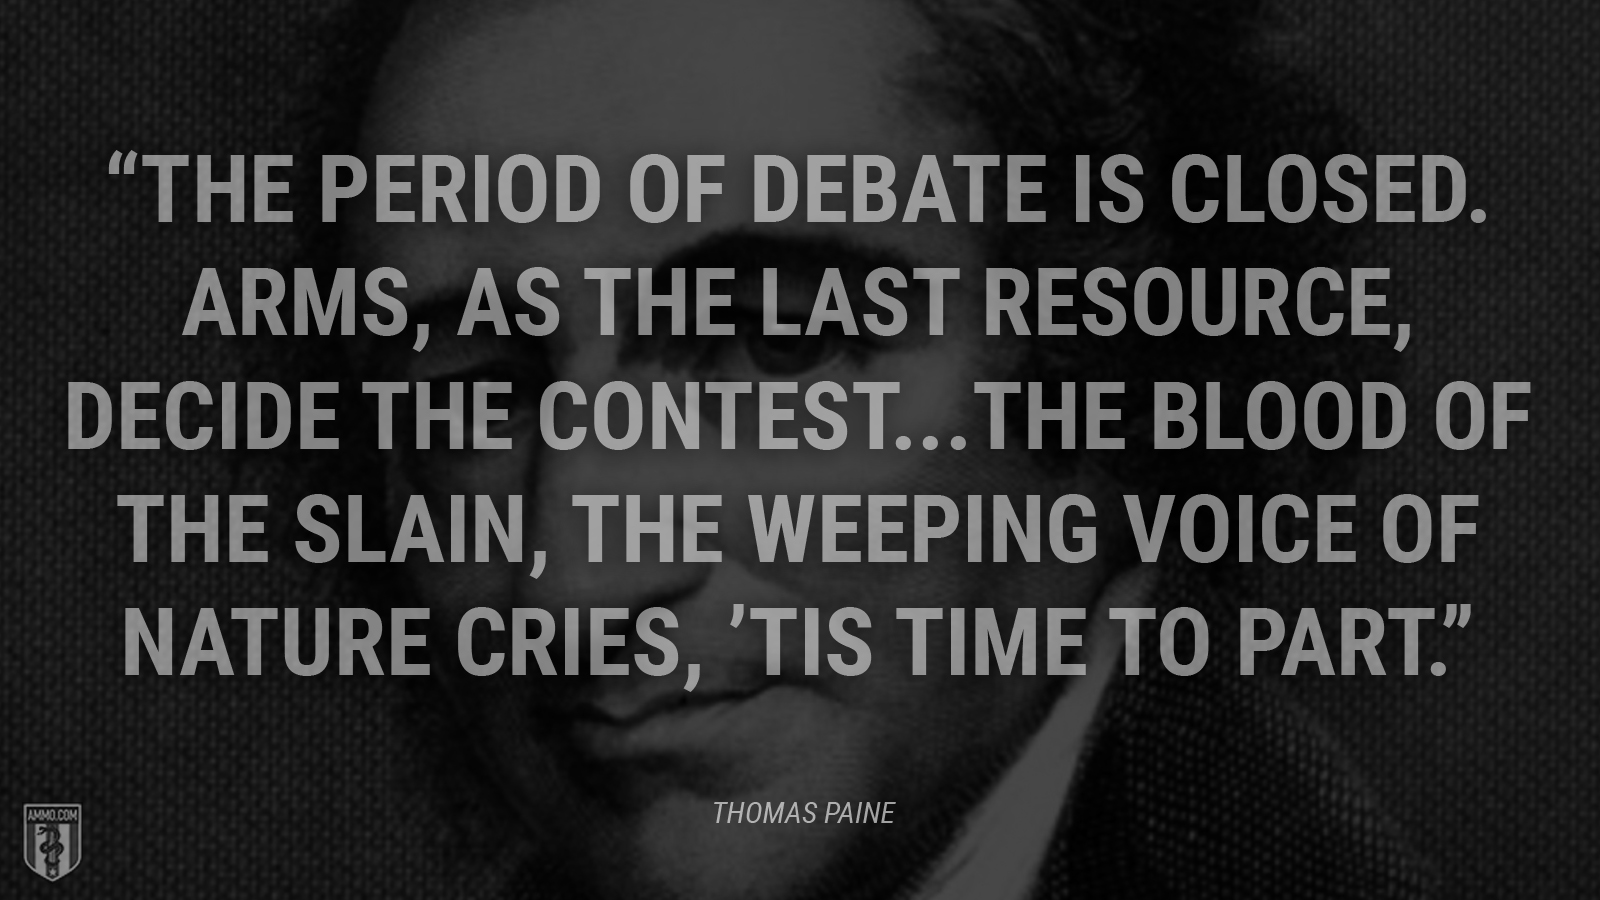 """The period of debate is closed. Arms, as the last resource, decide the contest...The blood of the slain, the weeping voice of nature cries, 'tis time to part."" - Thomas Paine"